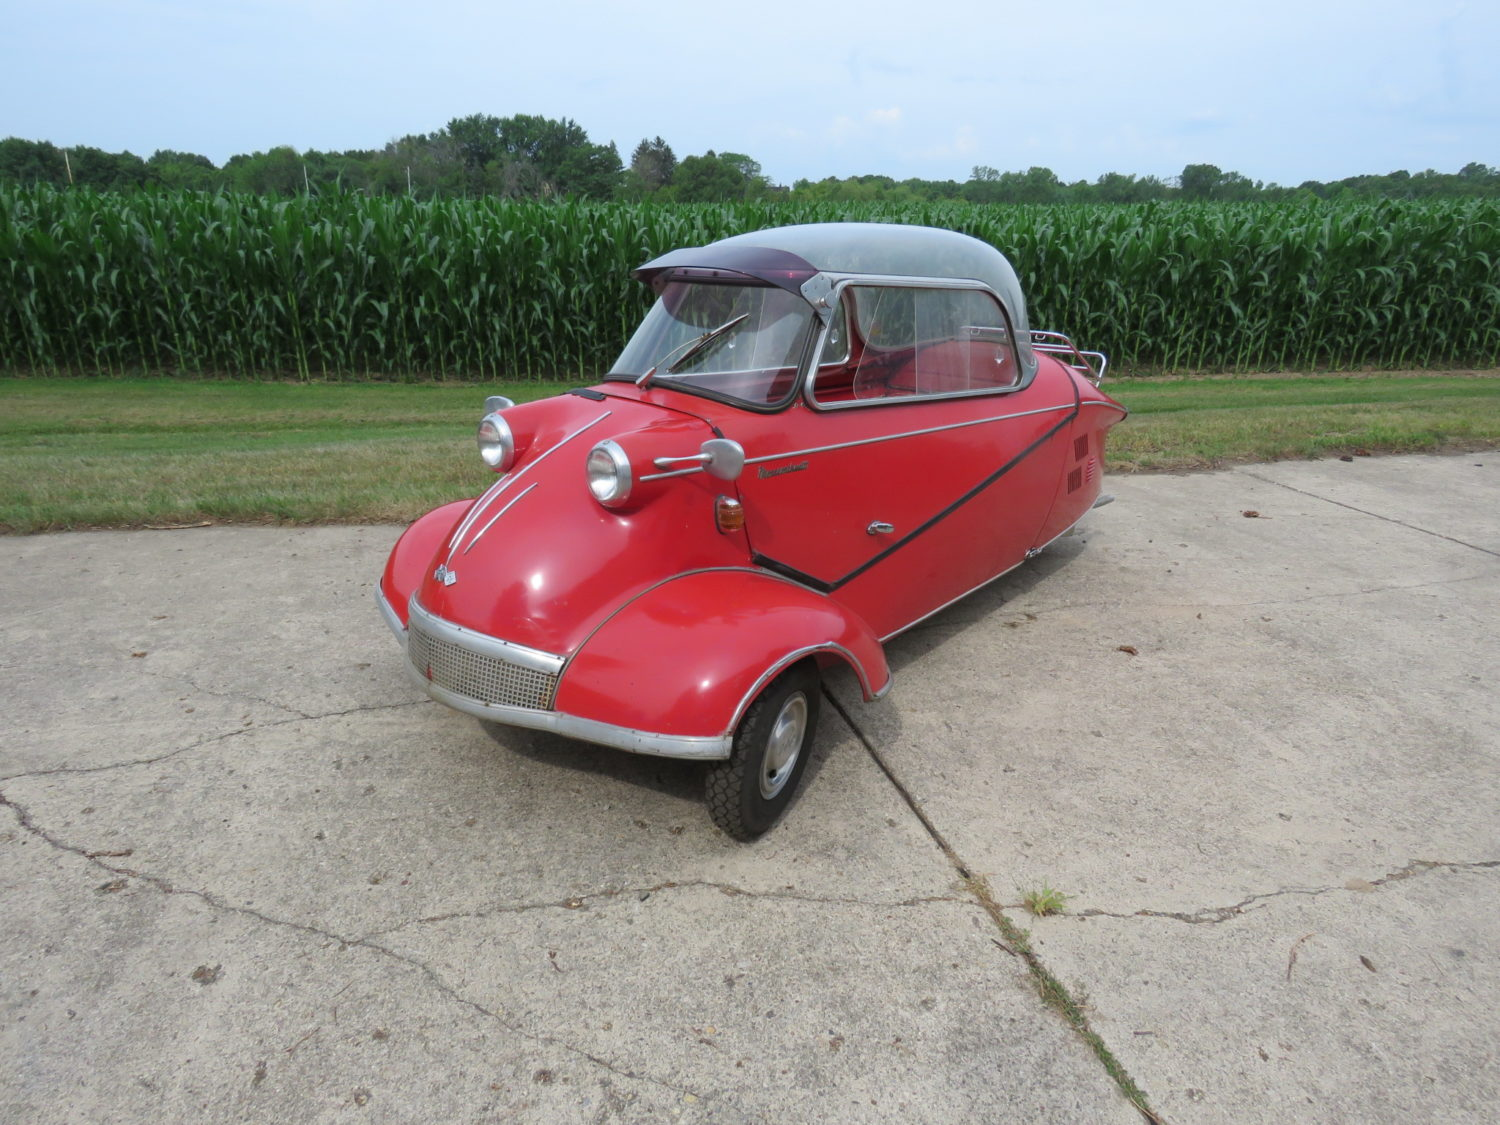 Collector Cars, Antique Tractors, Parts, Memorabilia & More.. The Del Beyer Estate Auction - image 4